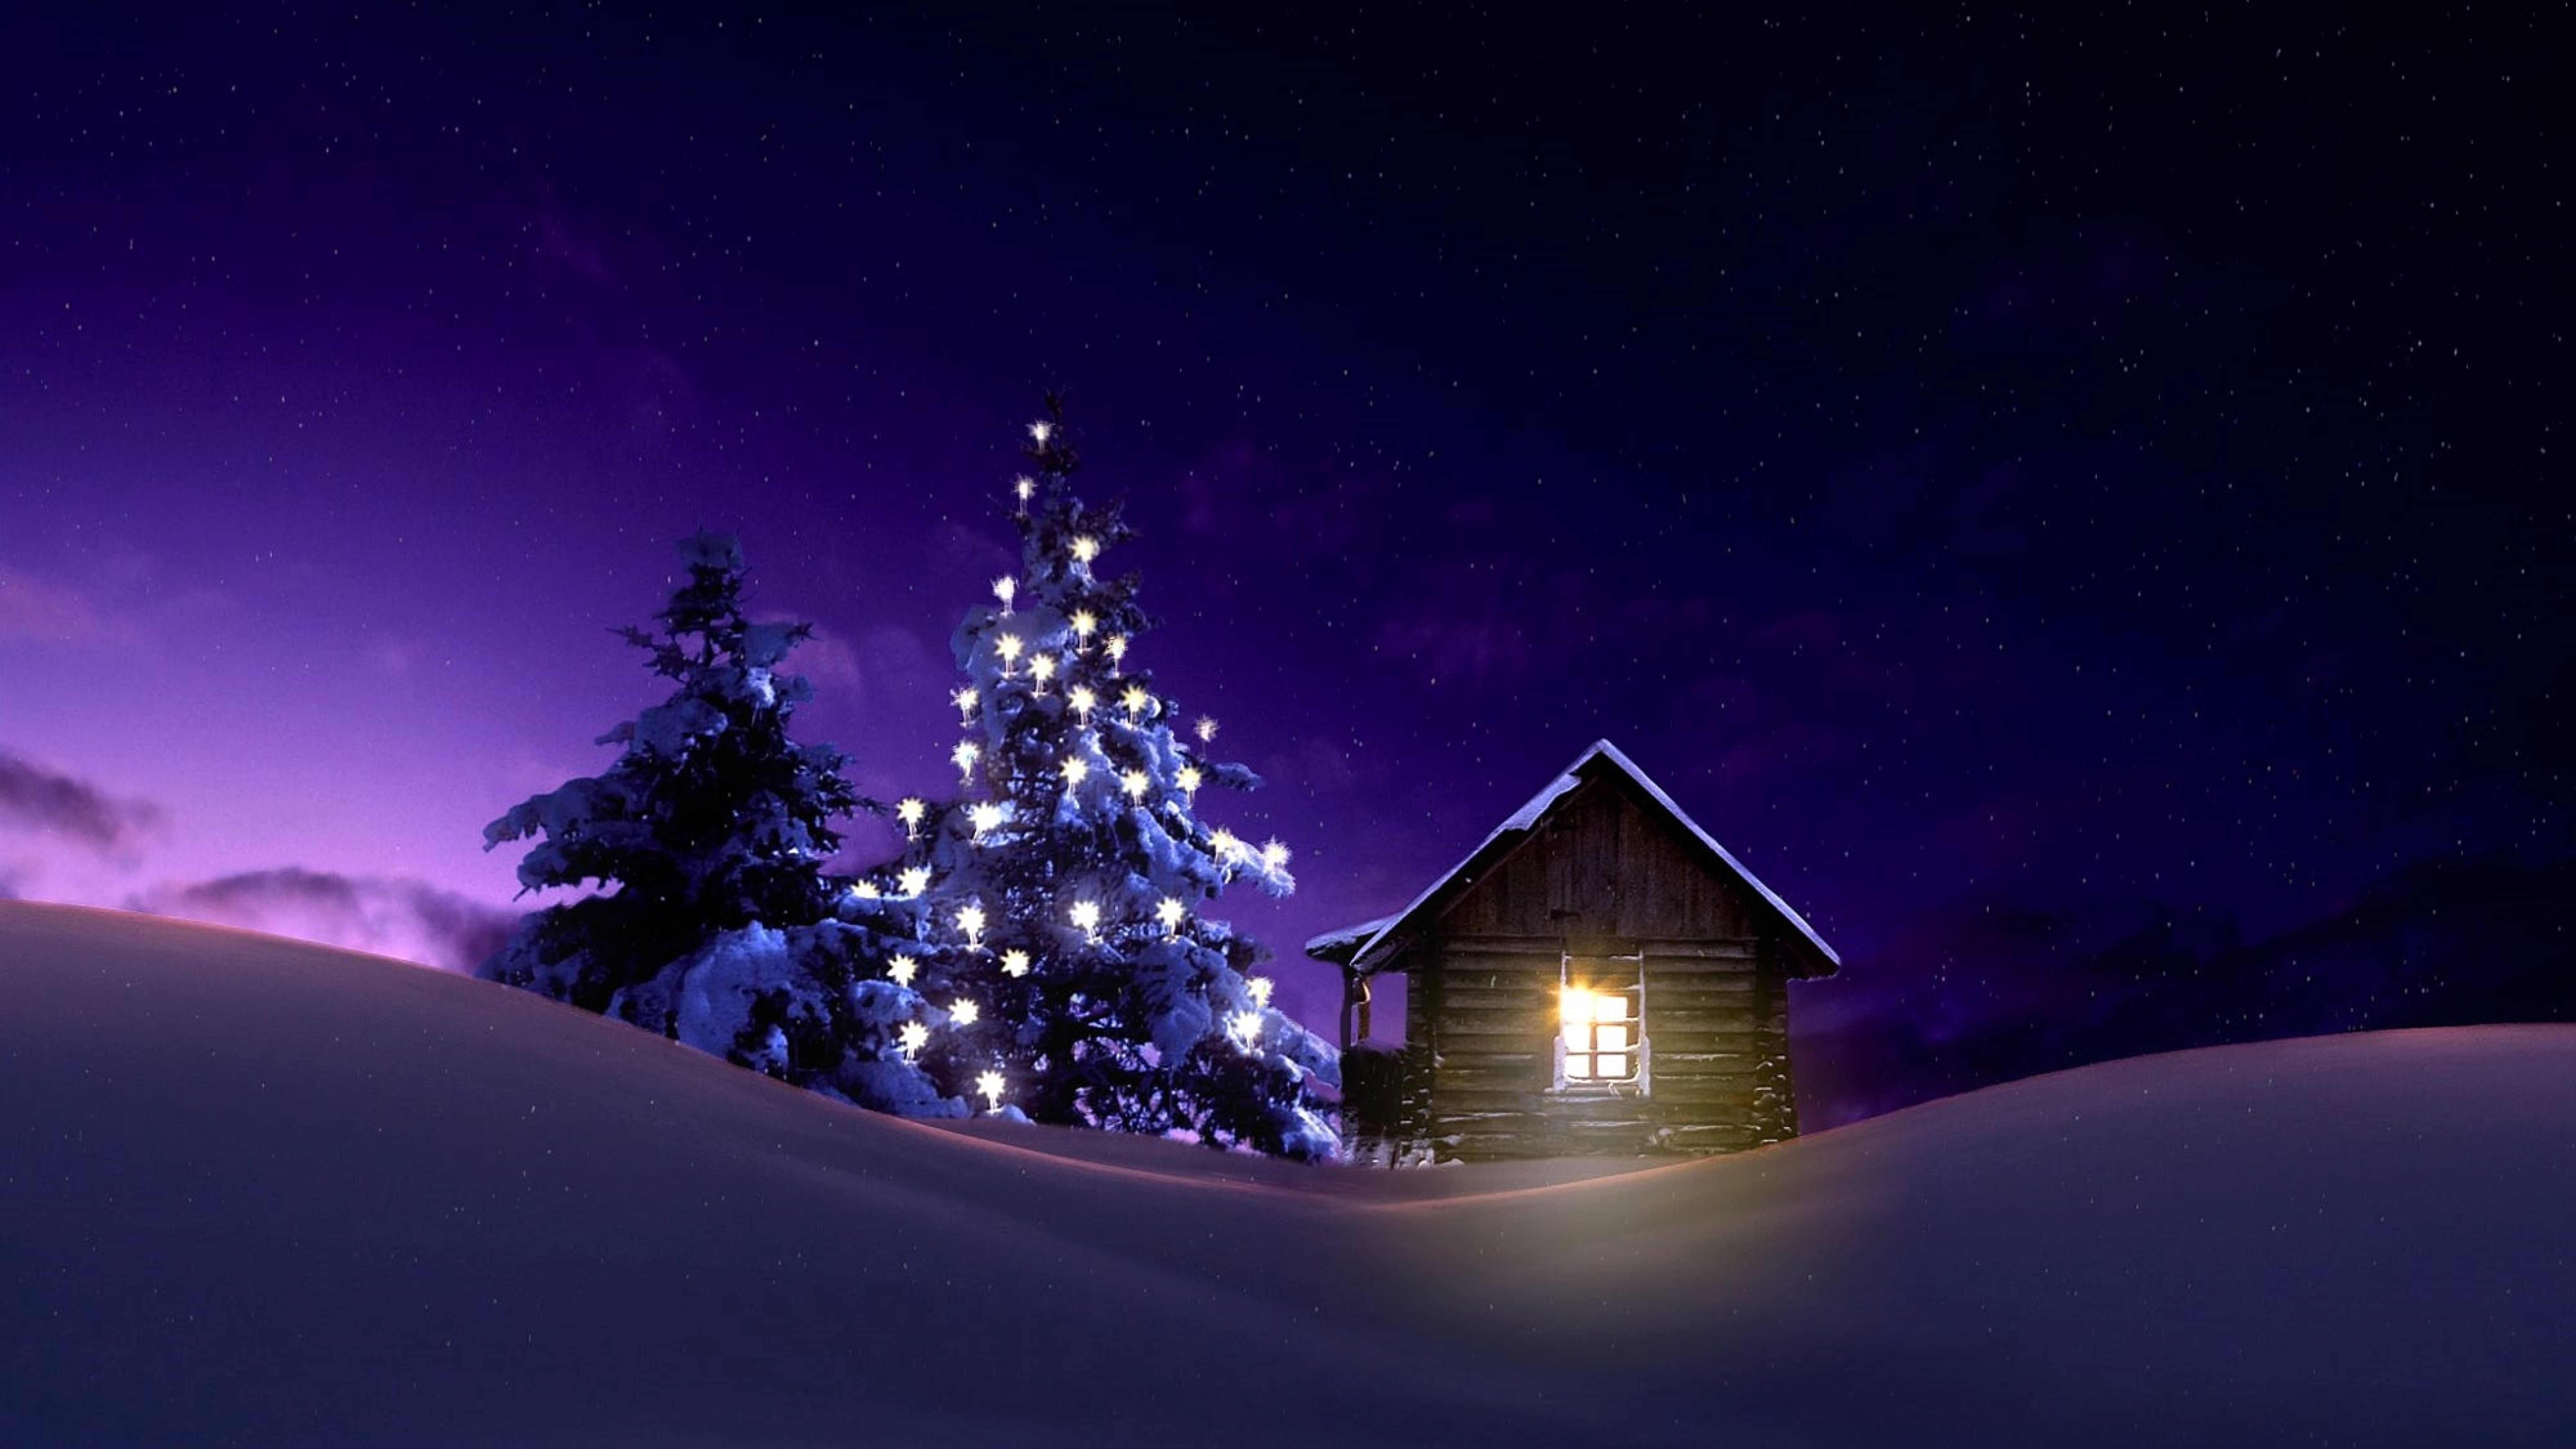 7679x4320 7680x4320 Christmas Lighted Tree Outside Winter Cabin 8K ...